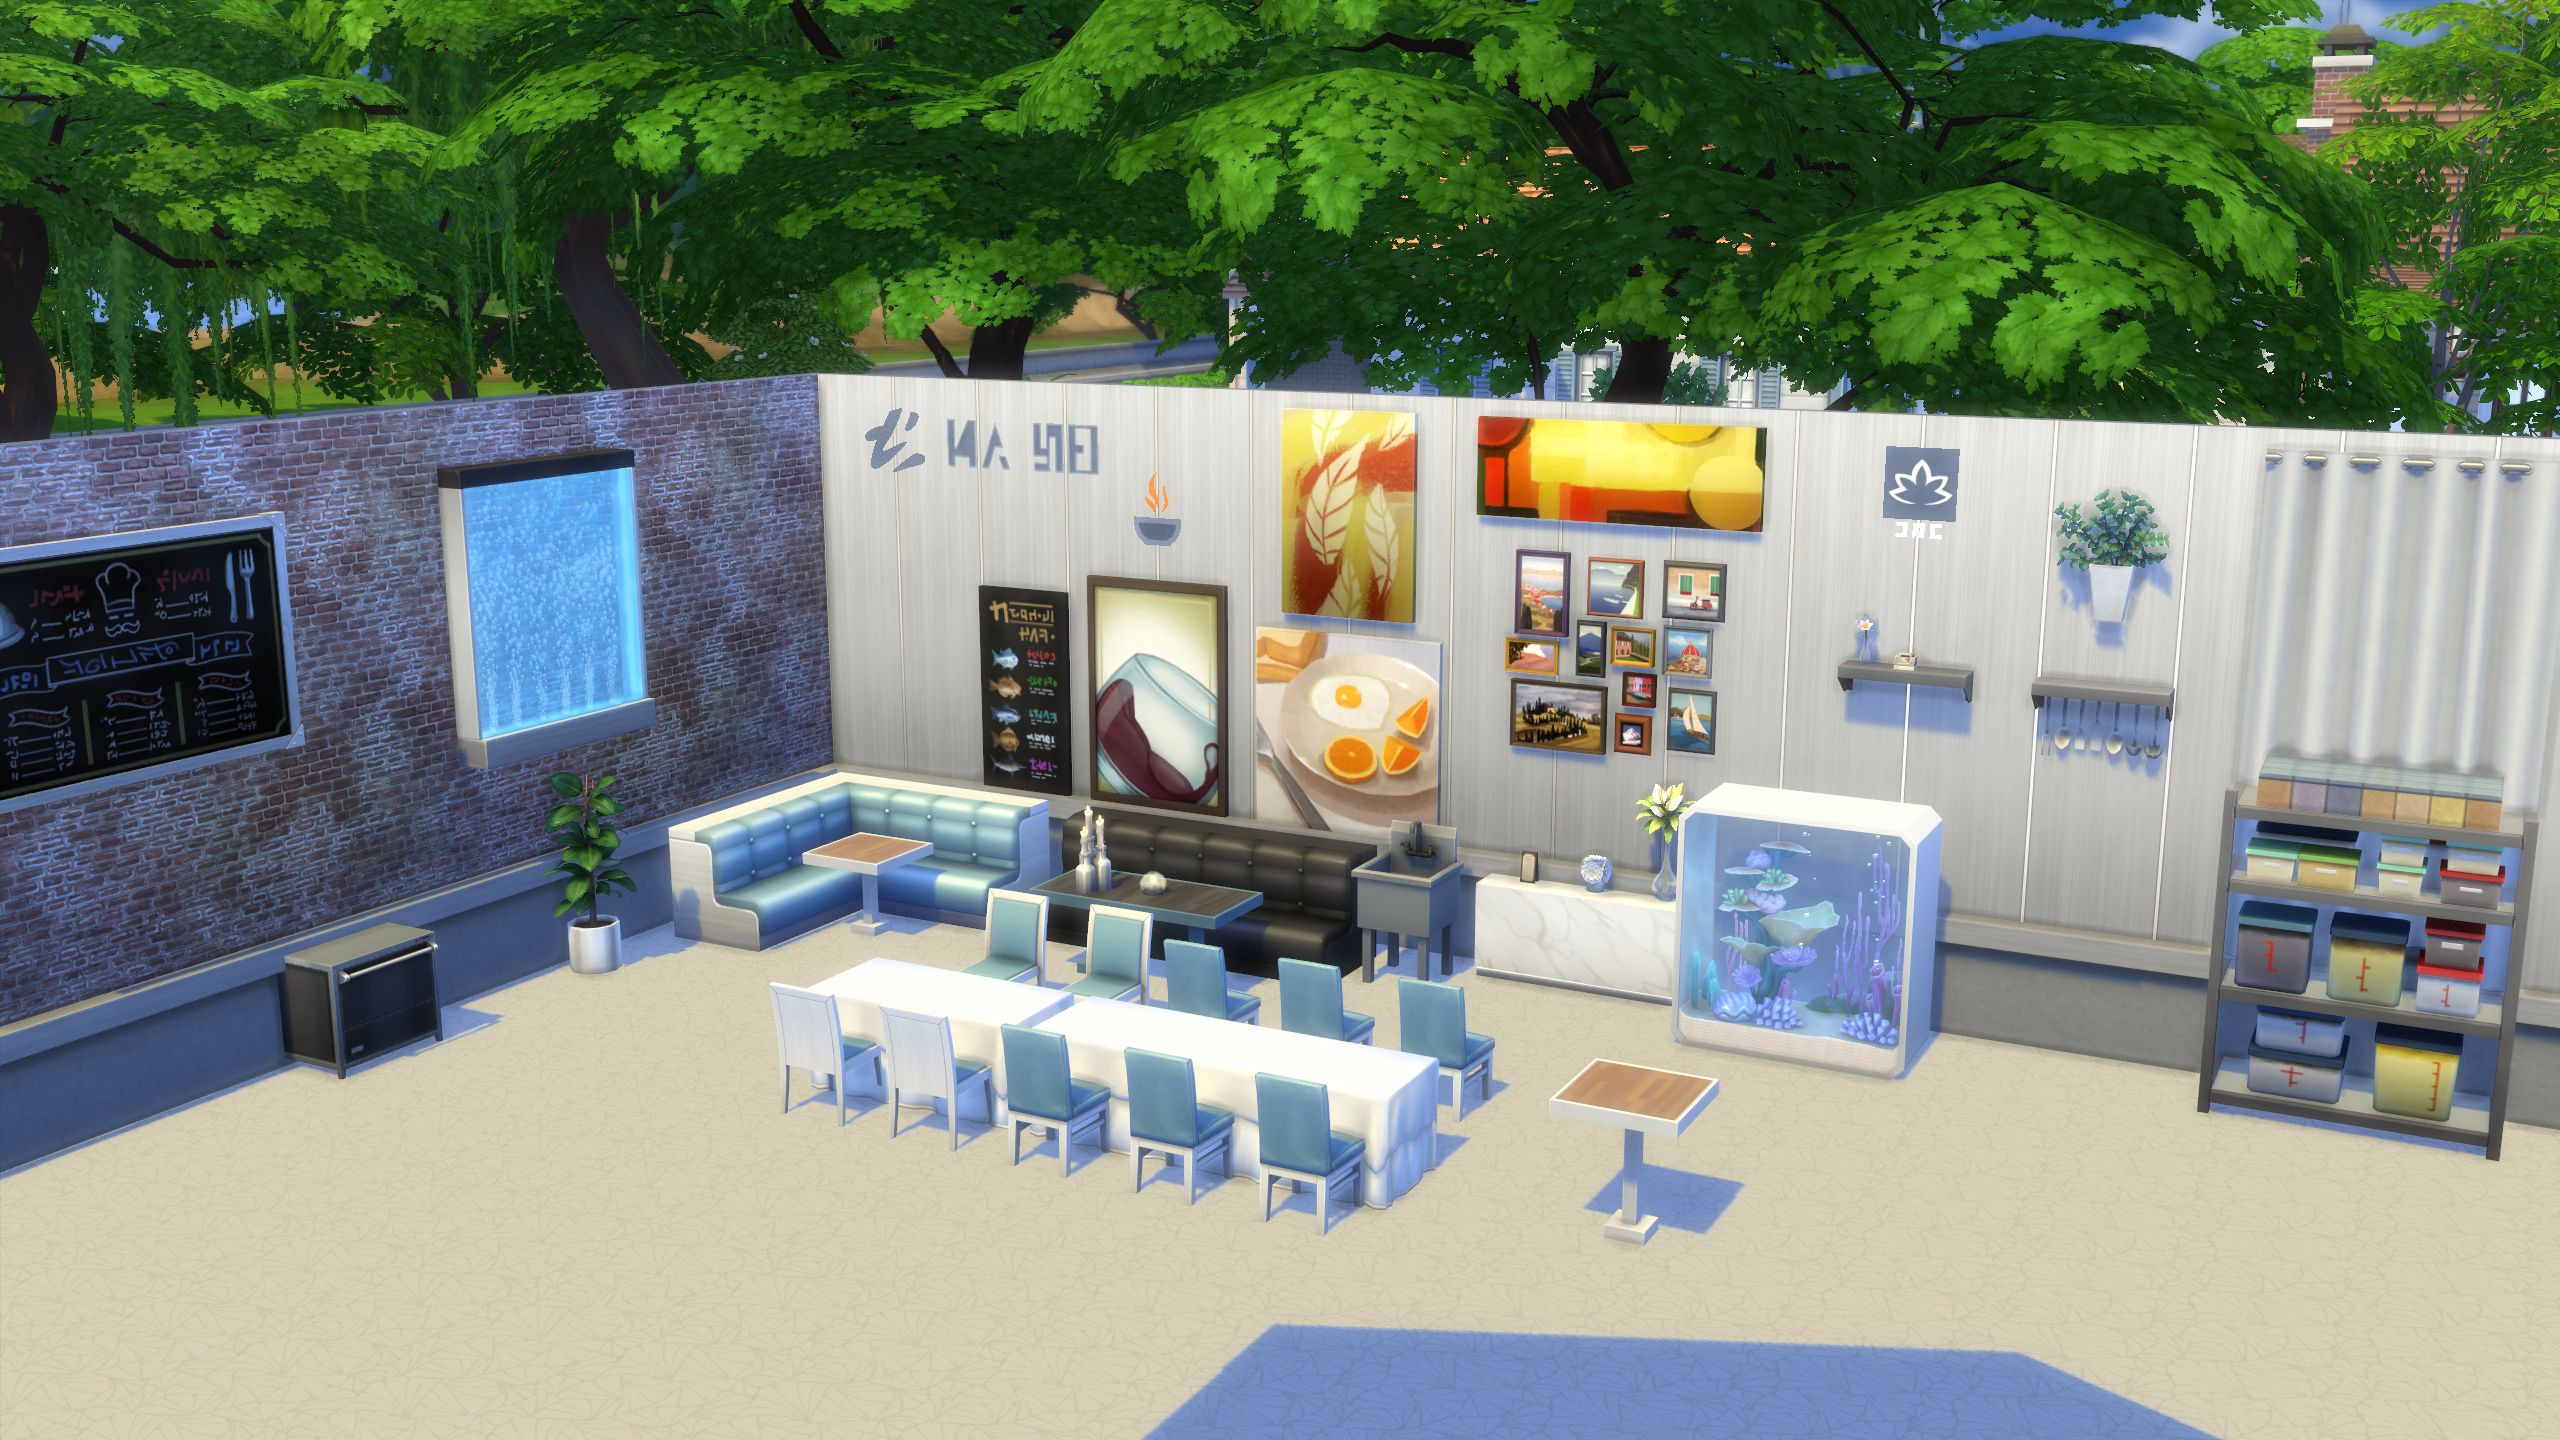 New Items In The Sims 4 Dine Out Pack